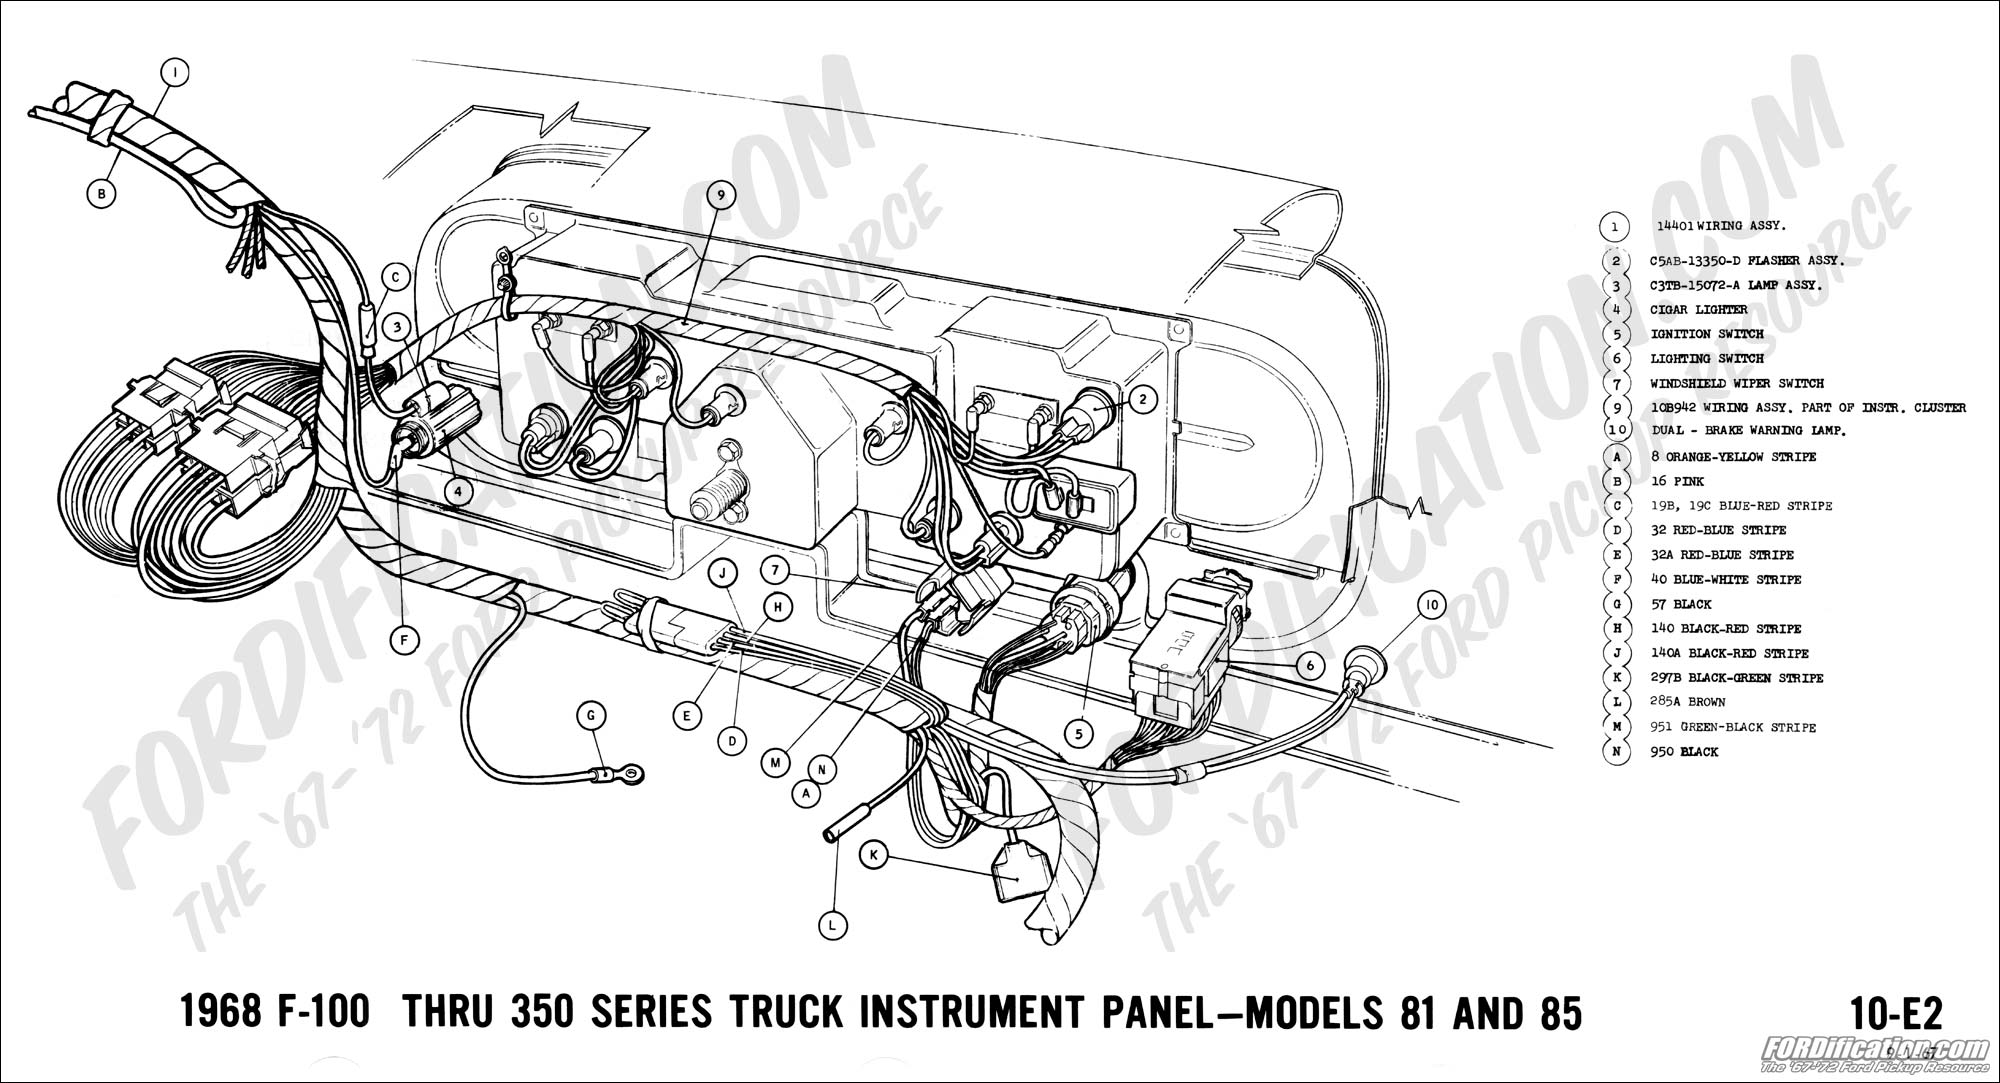 Rs232 likewise Parts Diagram Of Appendix likewise 1996 Jeep Grand Cherokee 4 0 Belt Diagram together with Schematics h besides Discussion T11902 ds667152. on box wiring diagram